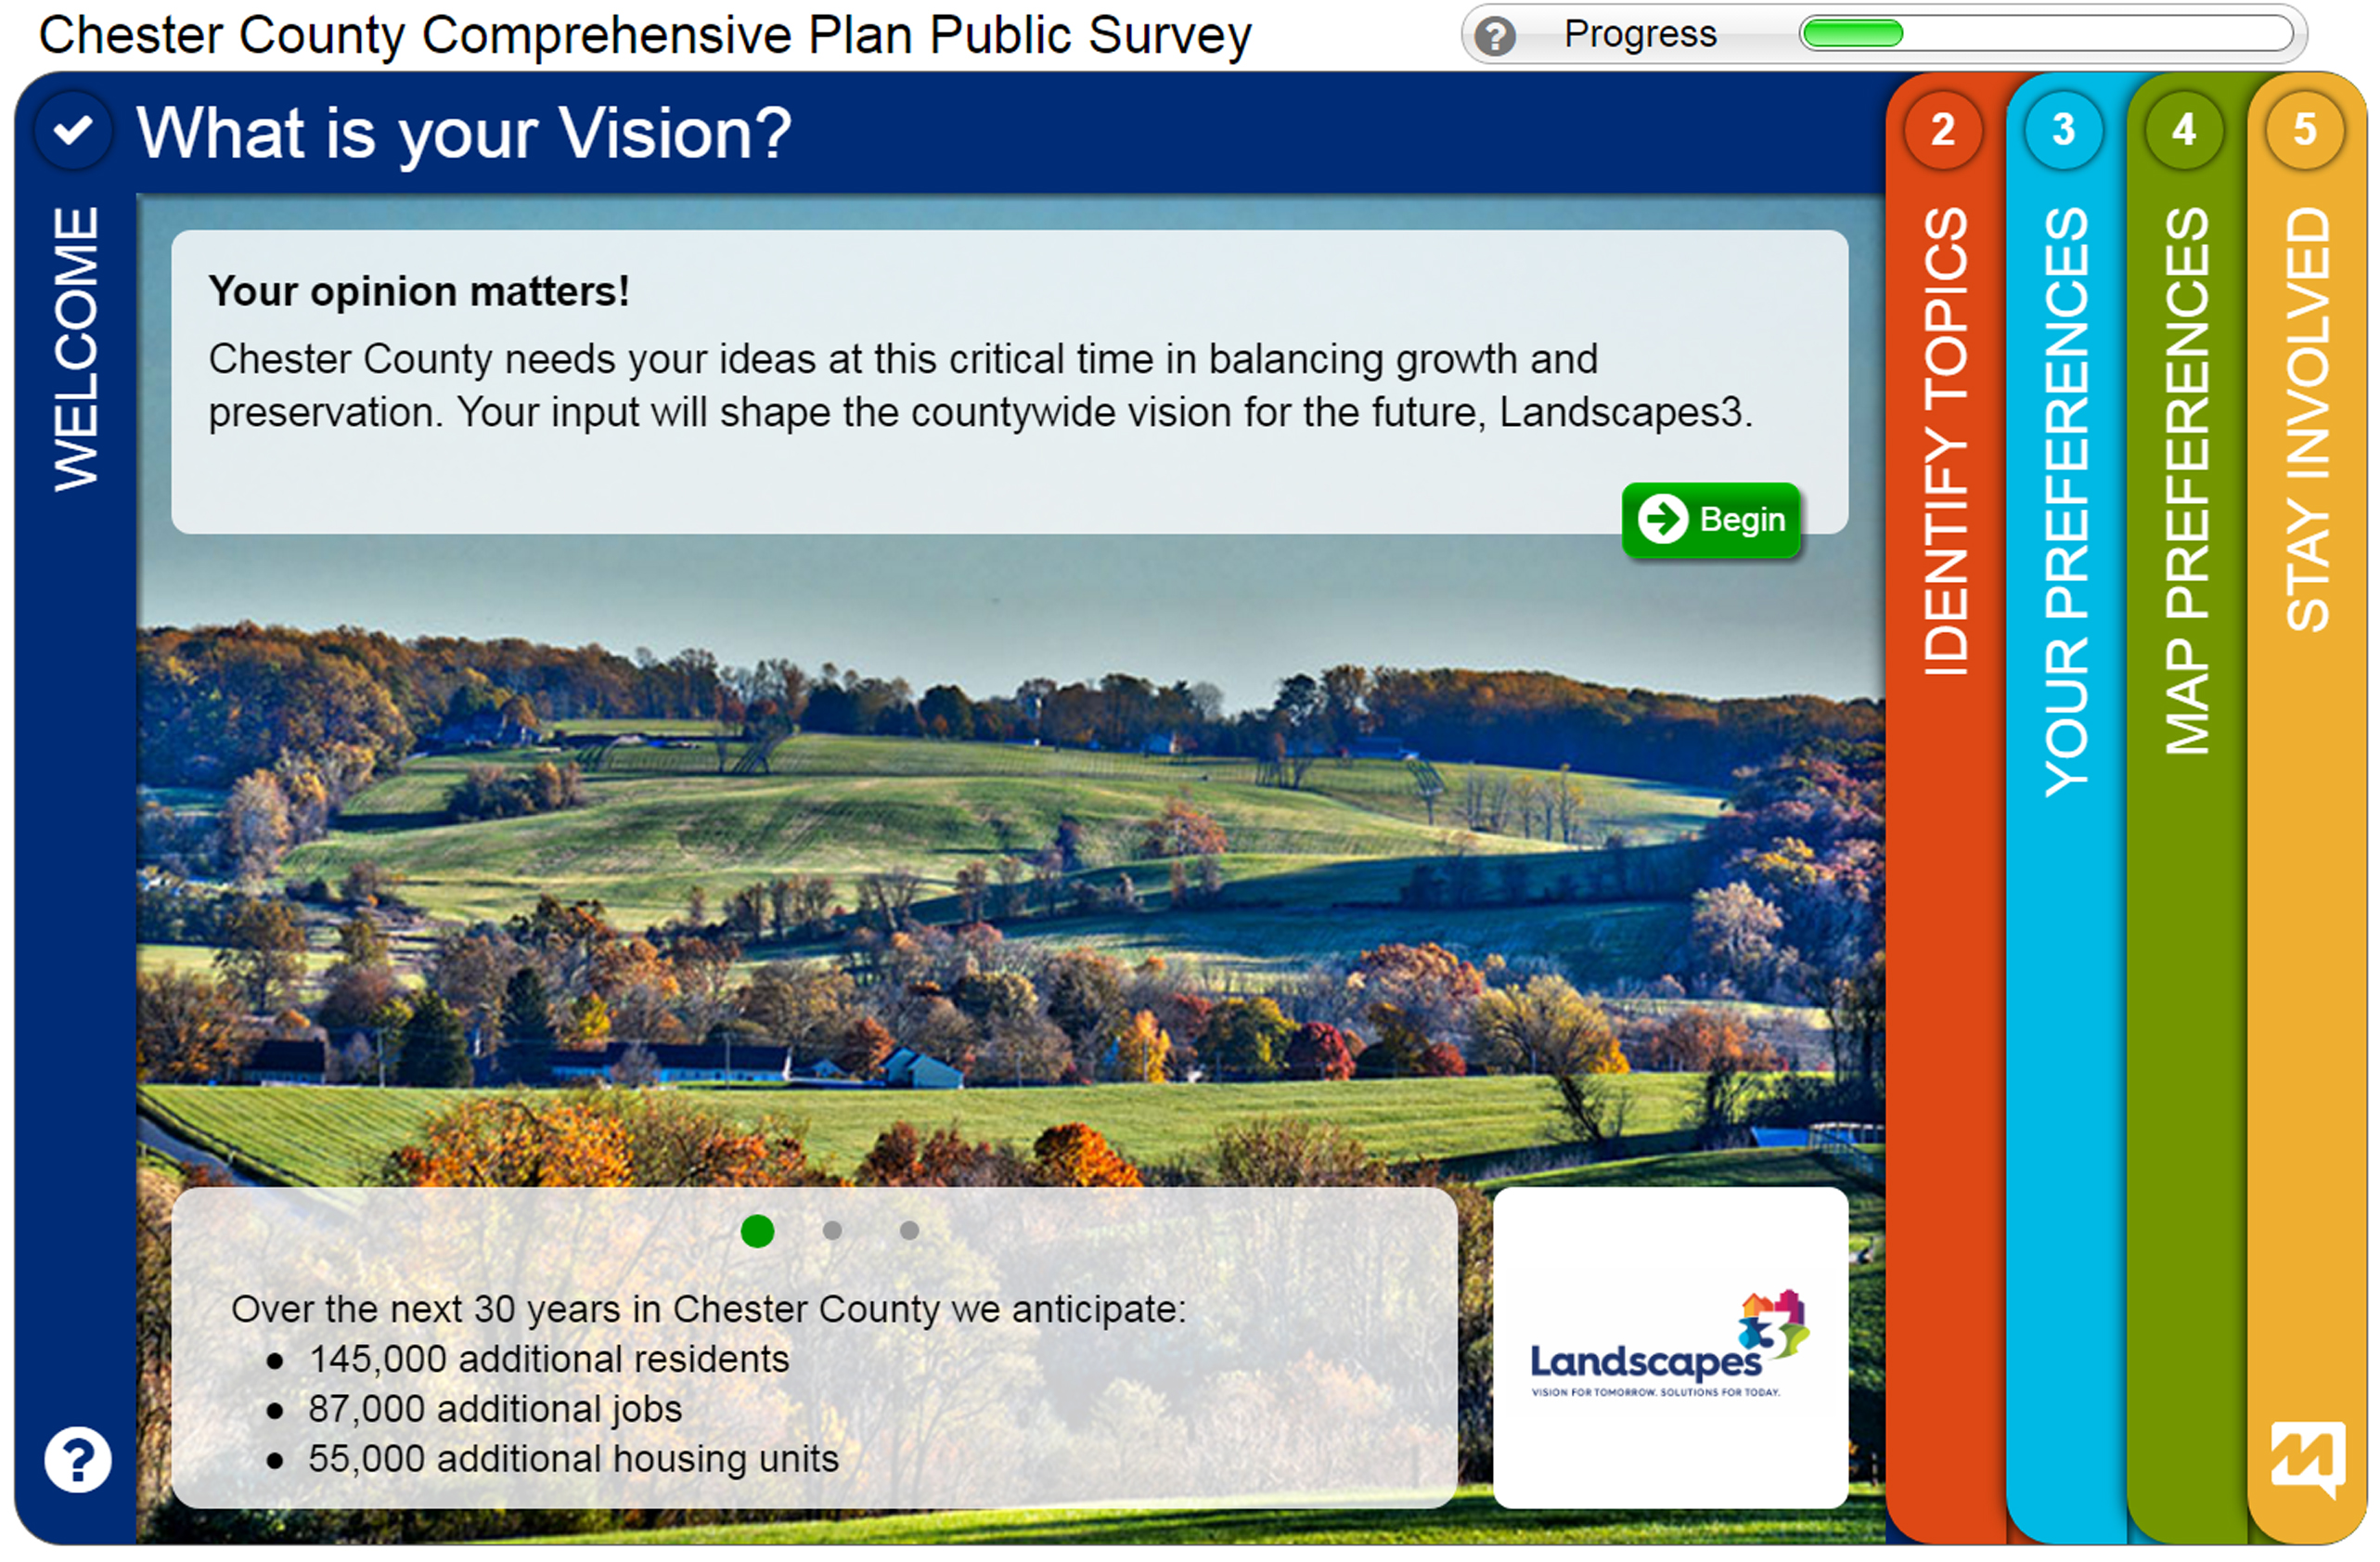 Commissioners Launch Public Survey About Future of Chester County